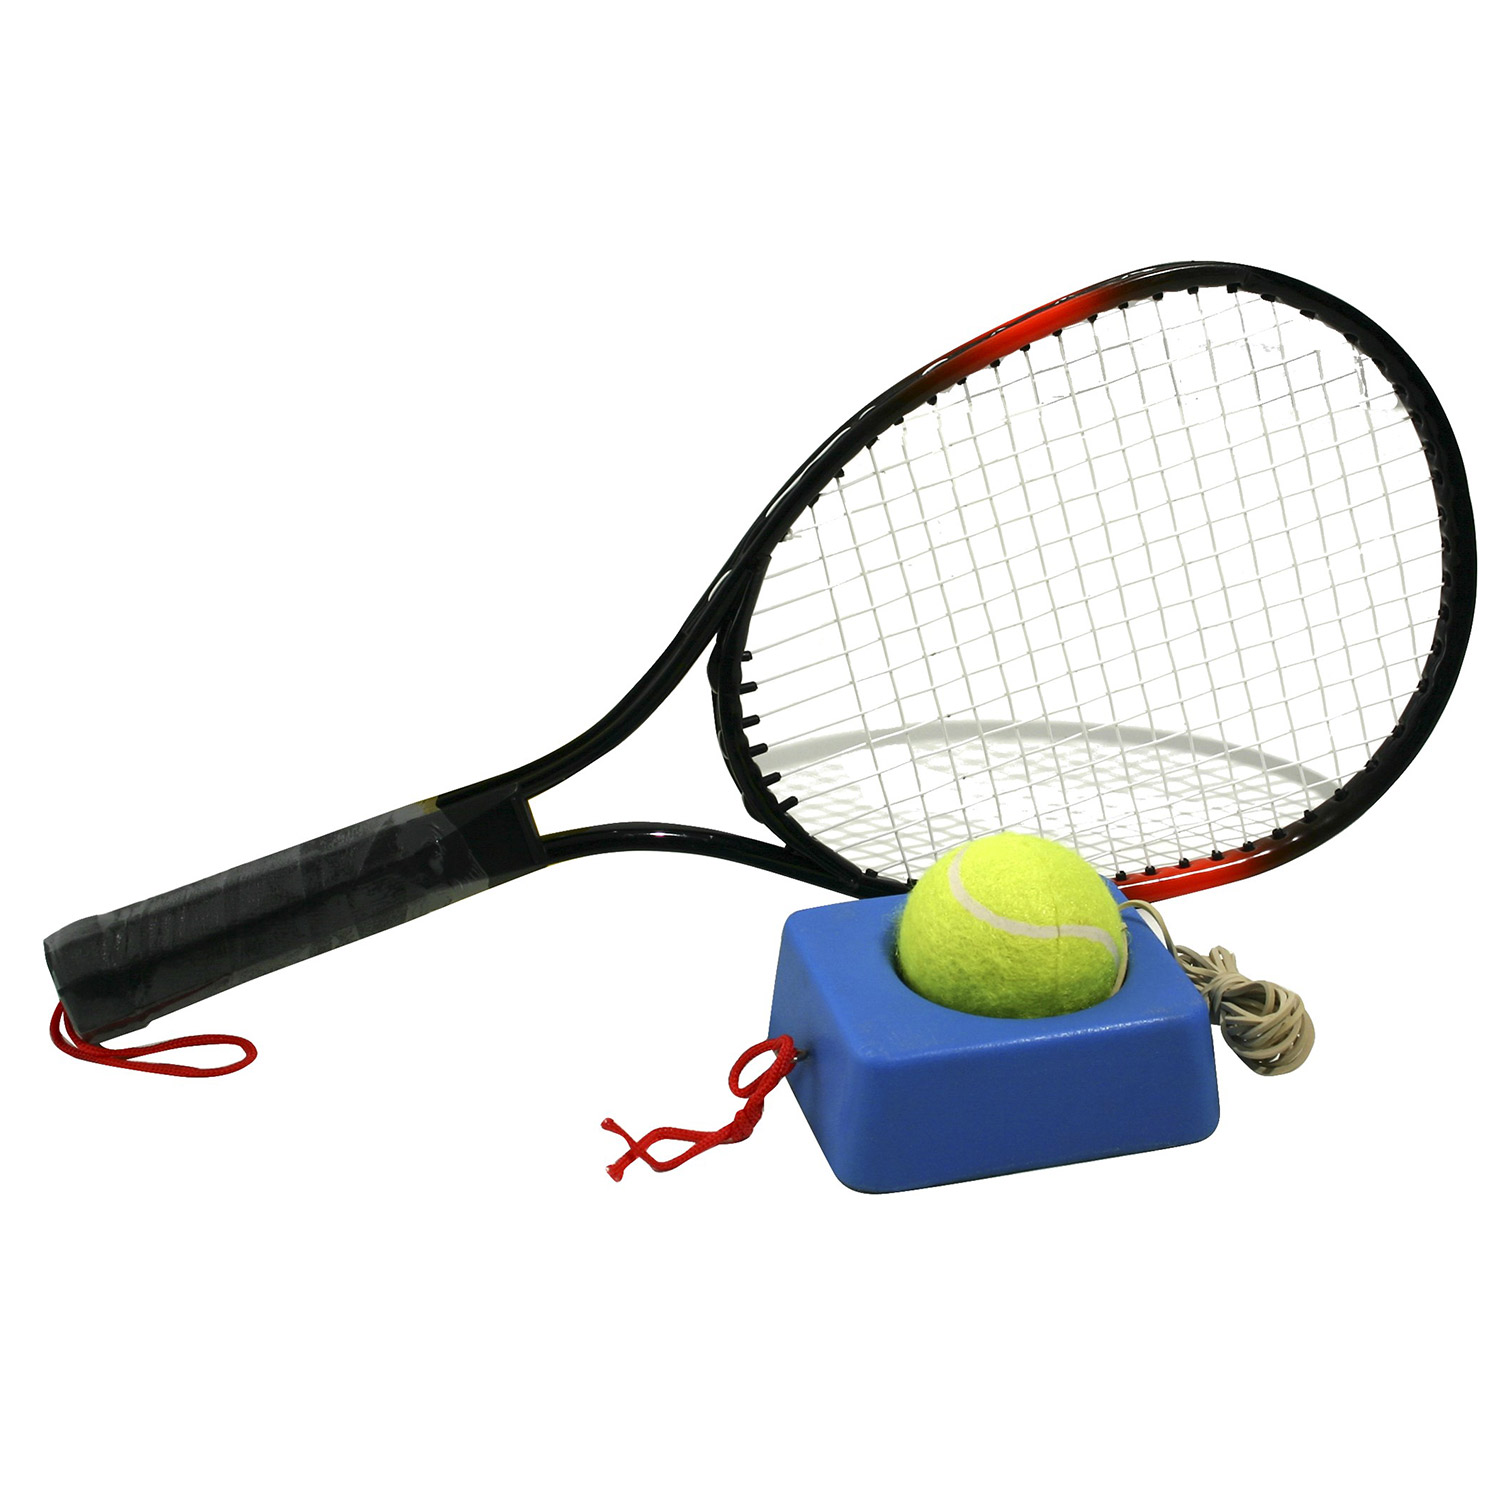 SportX Tennistrainer met Racket